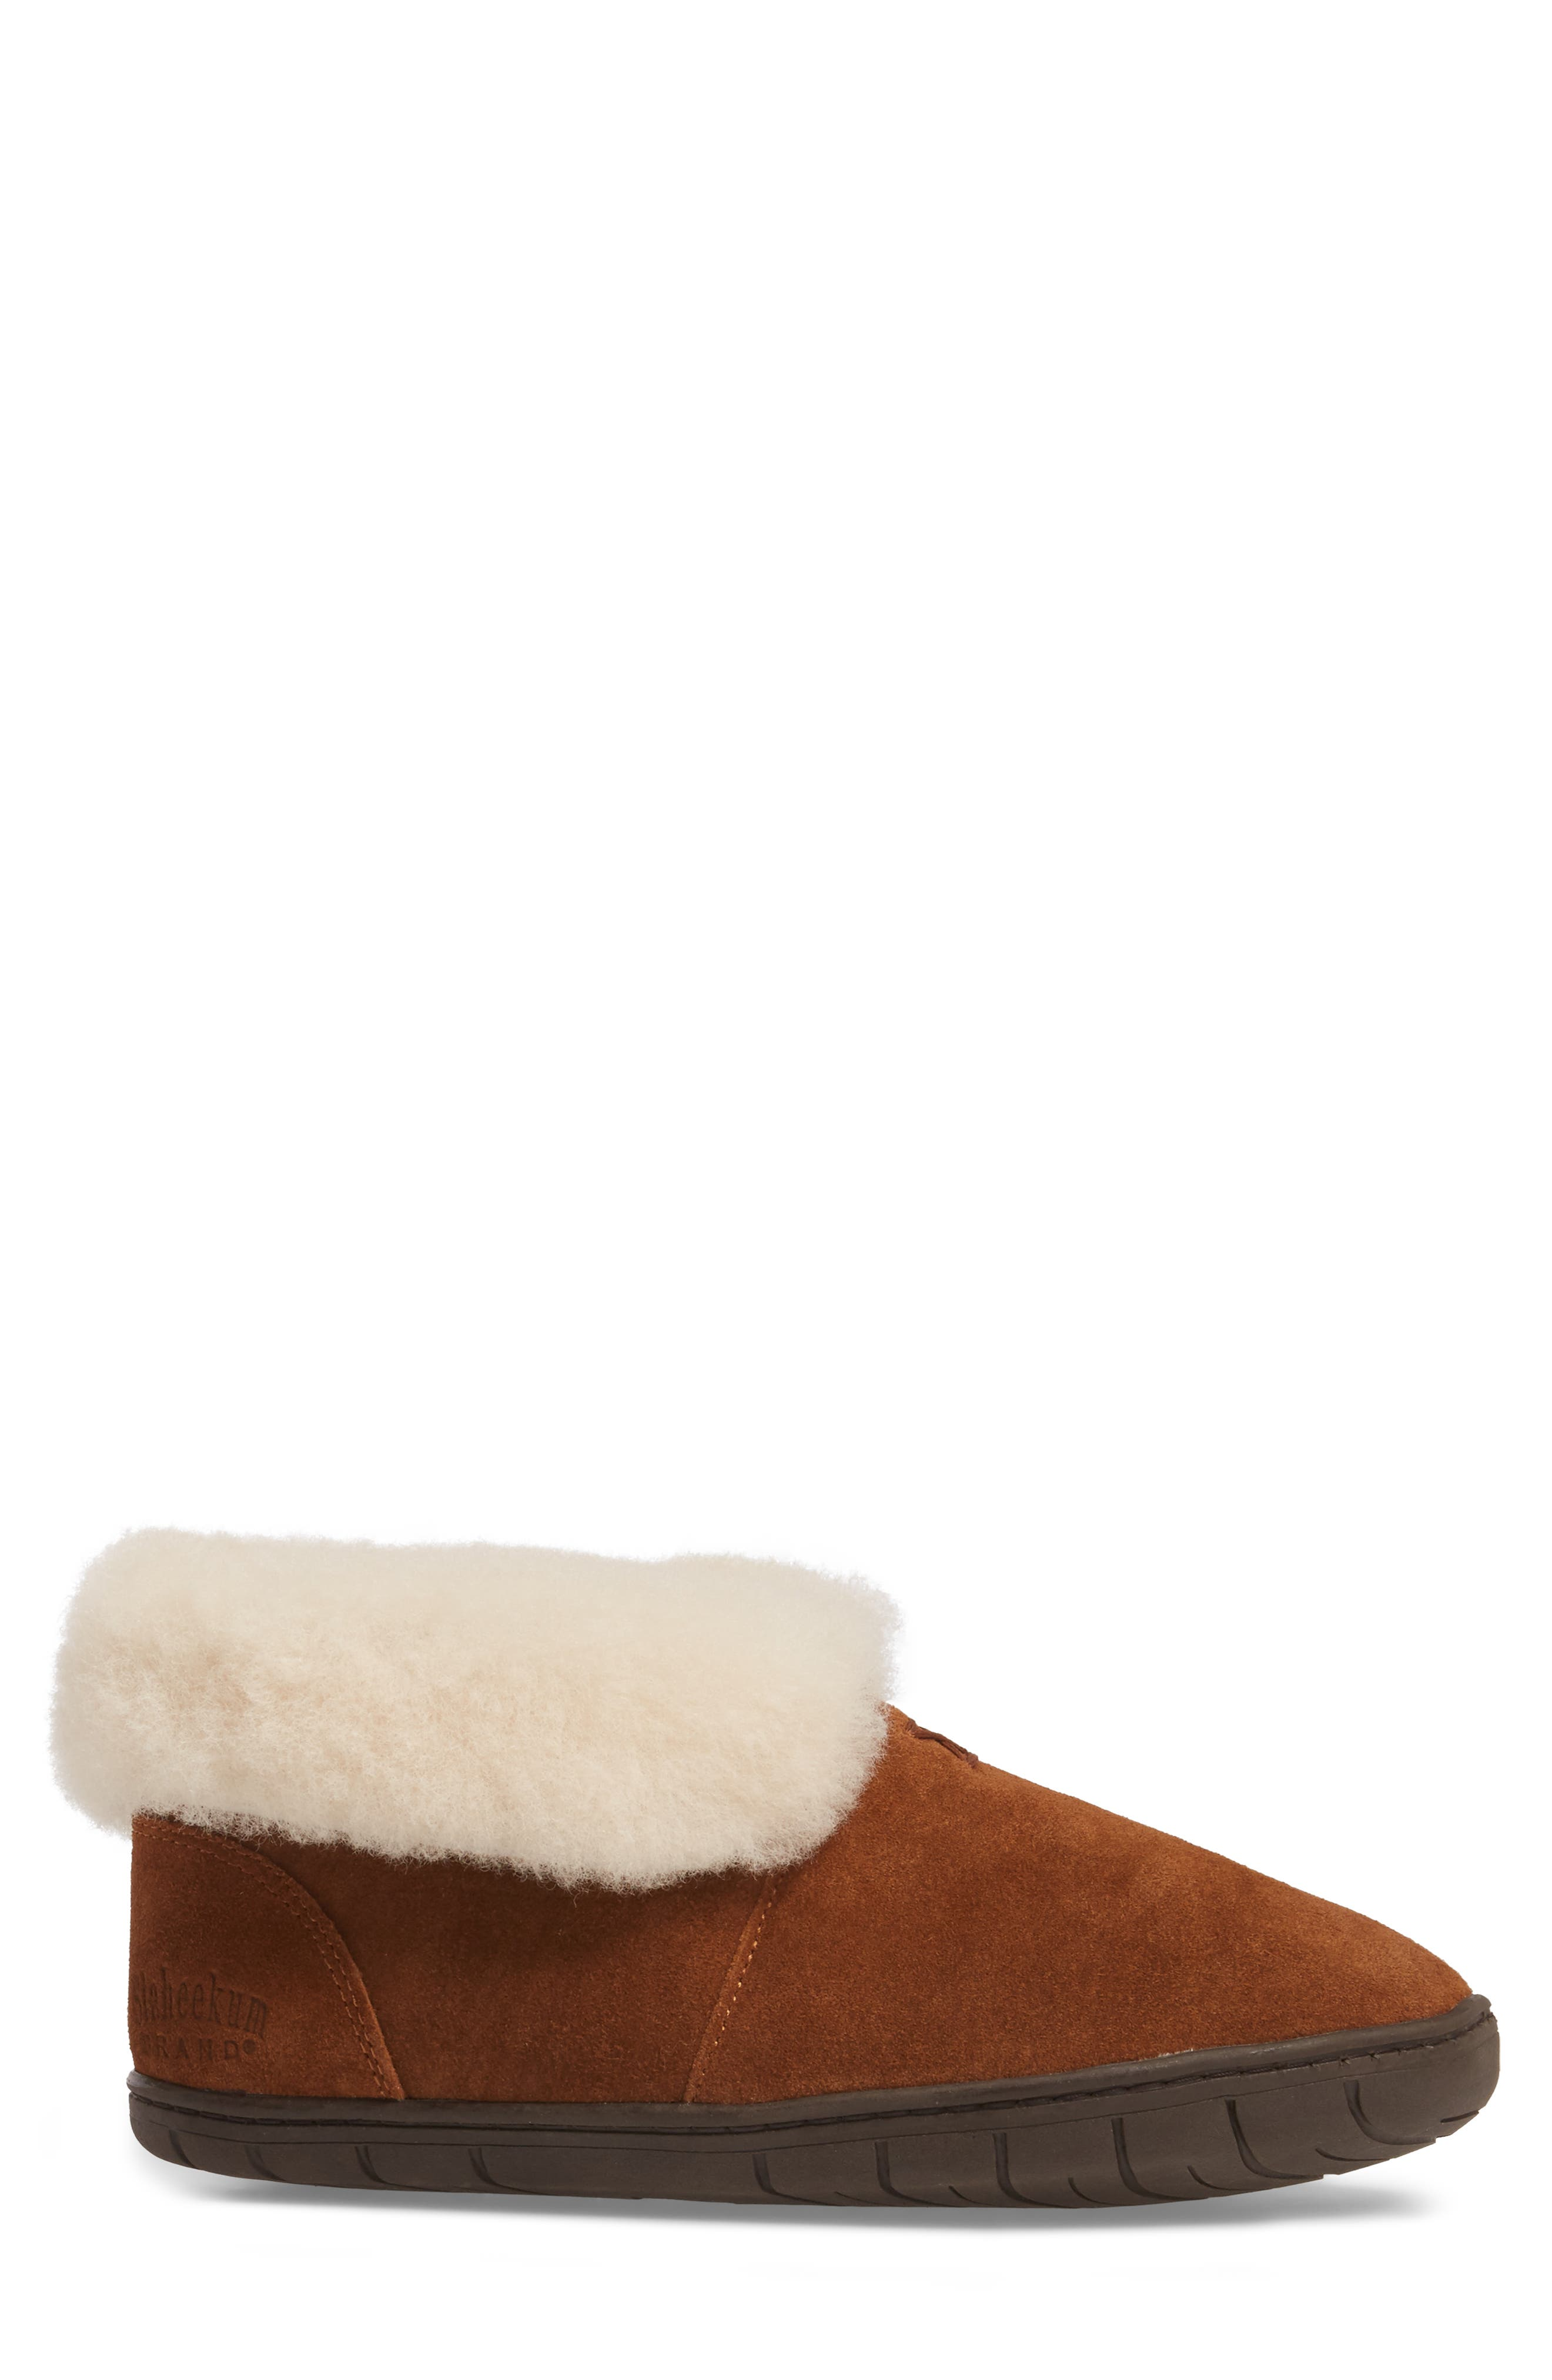 Alternate Image 3  - Staheekum Tundra Slipper Bootie with Genuine Shearling Lining (Men)